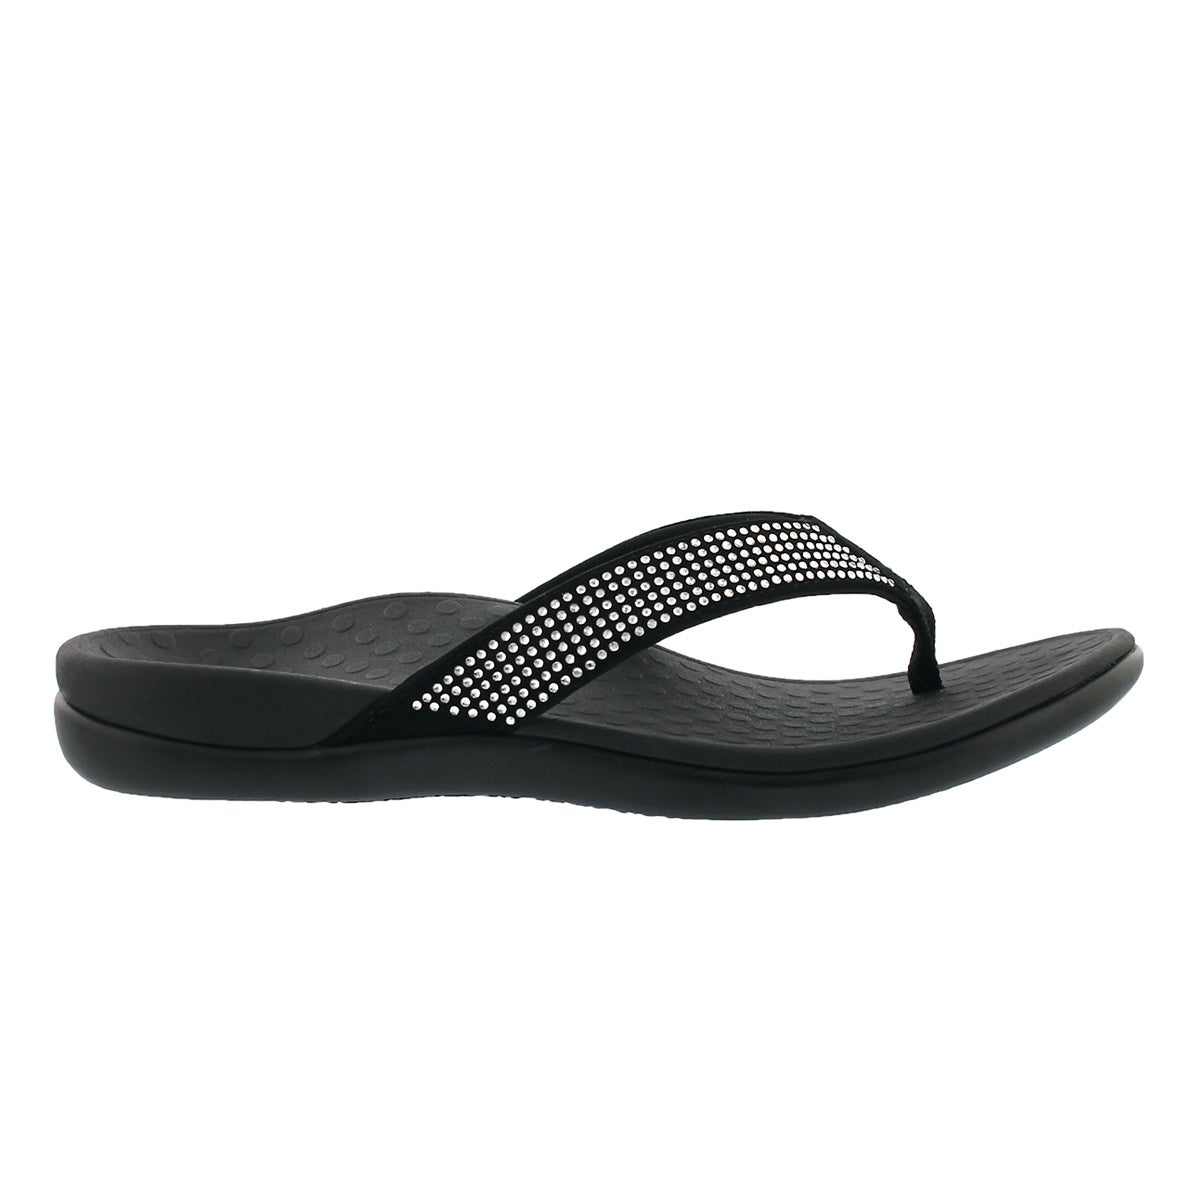 Lds TideRhinestone blk arch support thng